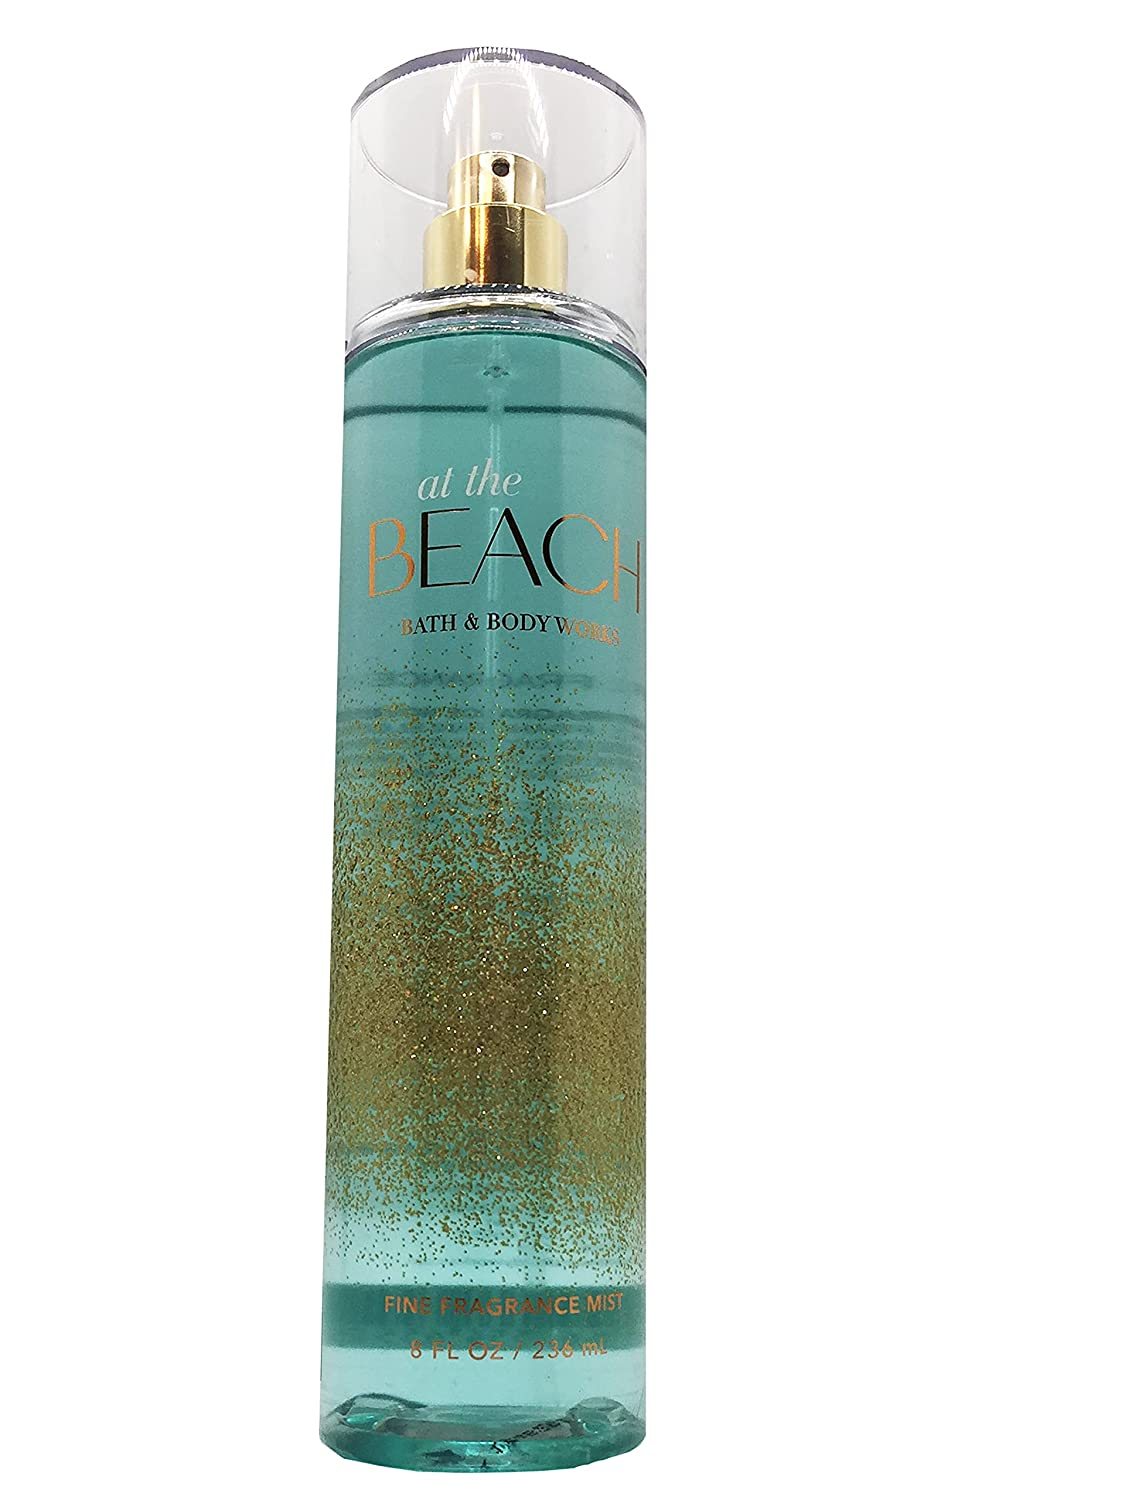 Bath and Body Works ! Super beauty product restock quality top! AT THE BEACH Fine Fluid 8 Fragrance Oun Mist Industry No. 1